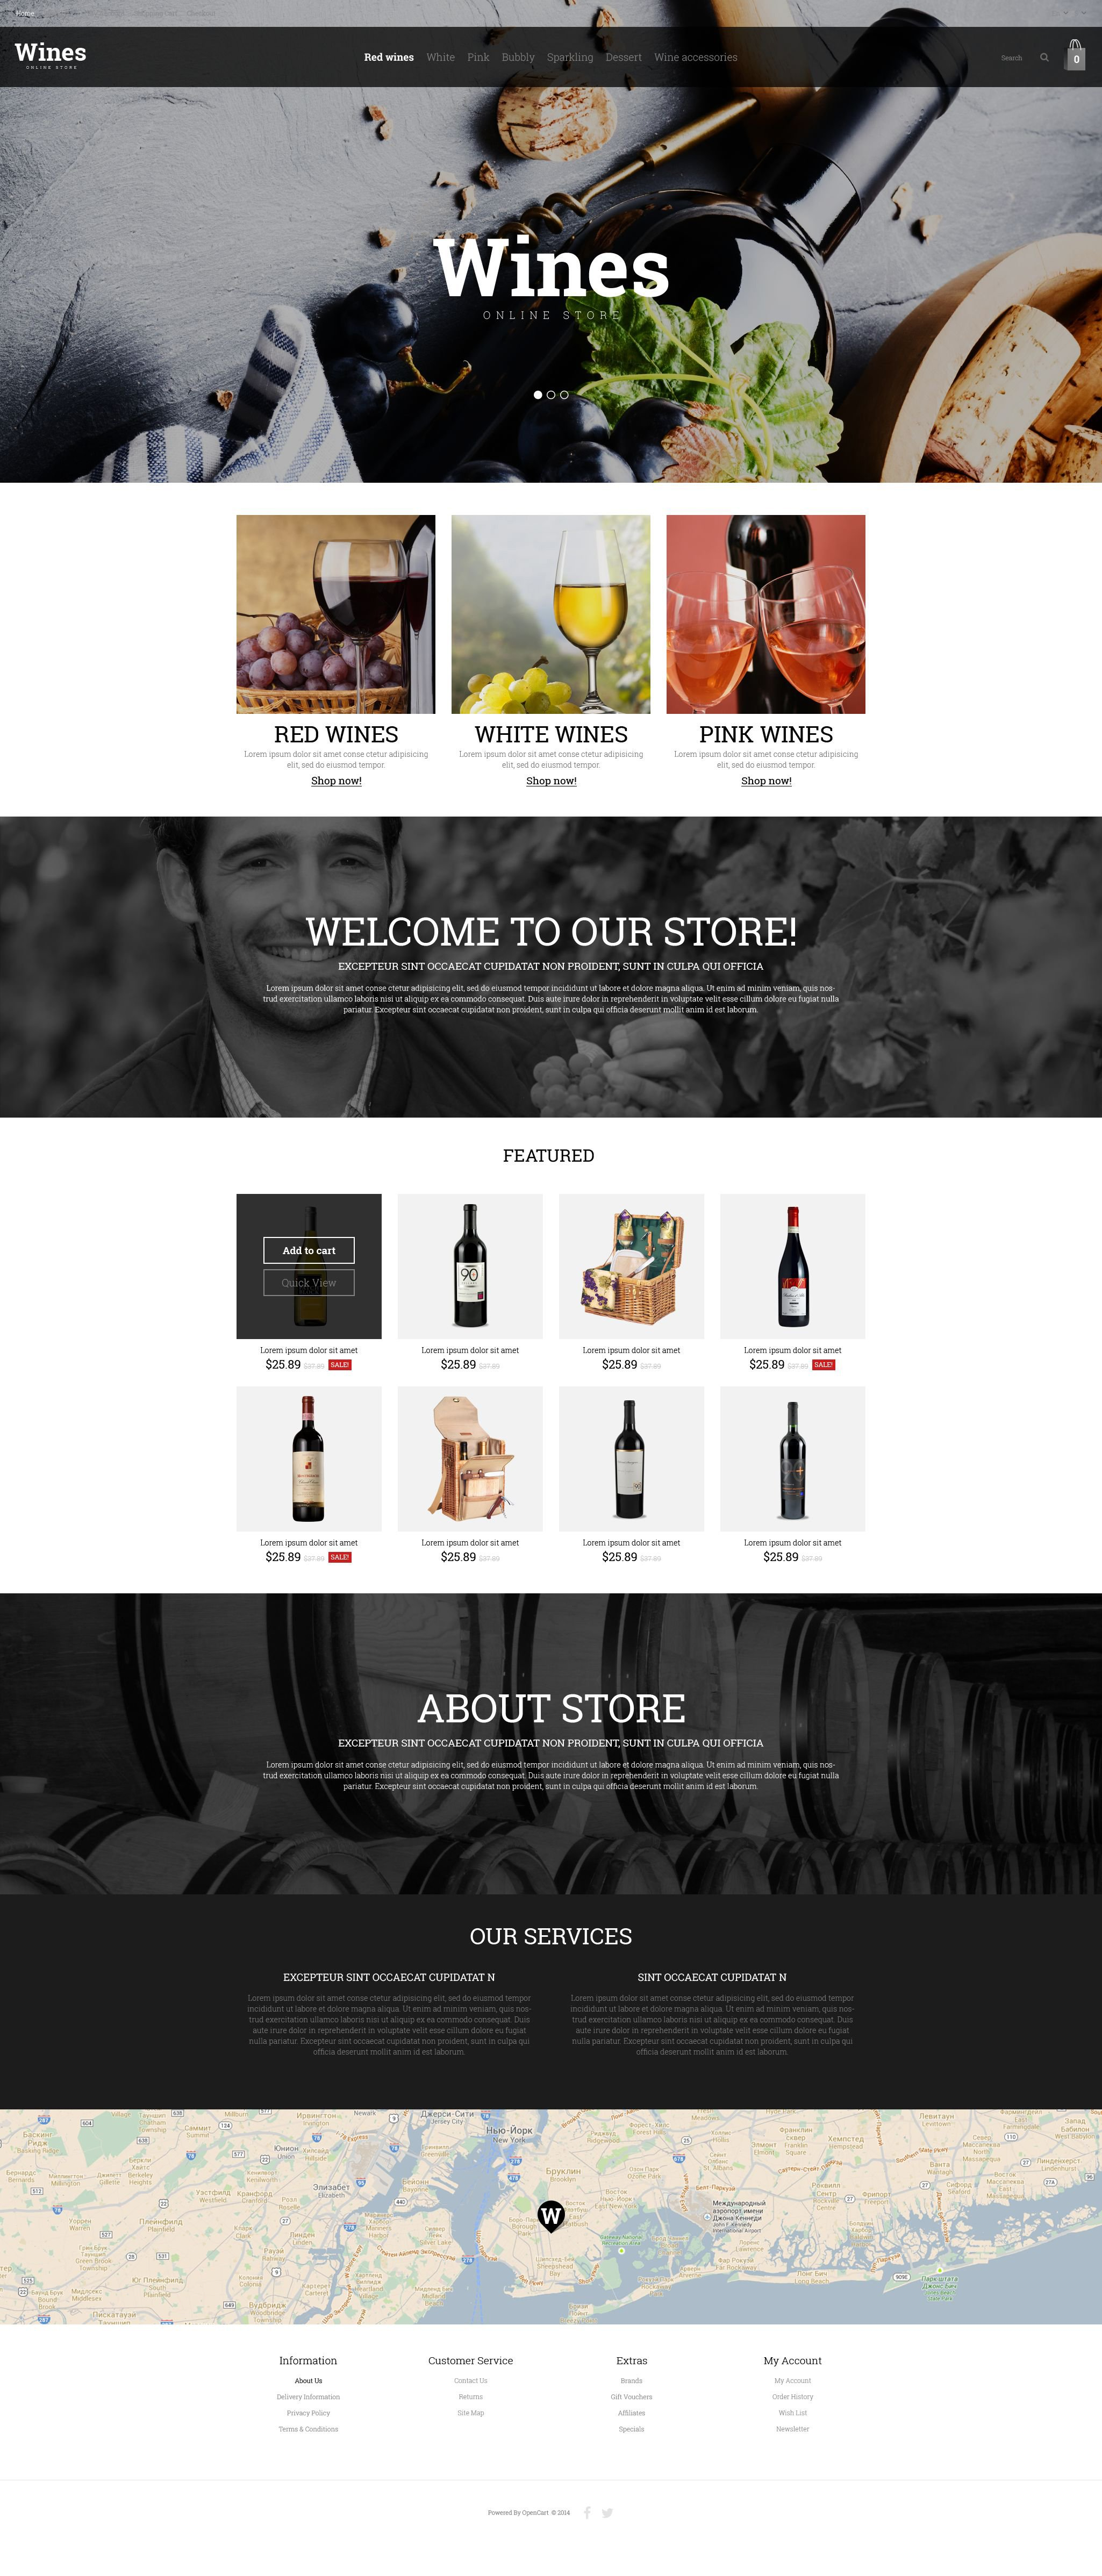 The Wine Store OpenCart Design 53499, one of the best OpenCart templates of its kind (food & drink, most popular), also known as wine store OpenCart template, production OpenCart template, grape OpenCart template, collection OpenCart template, red OpenCart template, white rose OpenCart template, bubbly OpenCart template, kosher OpenCart template, Champagne dry OpenCart template, traditions OpenCart template, cabernet OpenCart template, sauvignon OpenCart template, chardonnay OpenCart template, Muscat Pinot Noir bottles OpenCart template, cork OpenCart template, Bordeaux Bourgogne glass OpenCart template, taste restaurant OpenCart template, alcohol OpenCart template, bottle OpenCart template, celebration OpenCart template, barrels and related with wine store, production, grape, collection, red, white rose, bubbly, kosher, Champagne dry, traditions, cabernet, sauvignon, chardonnay, Muscat Pinot Noir bottles, cork, Bordeaux Bourgogne glass, taste restaurant, alcohol, bottle, celebration, barrels, etc.